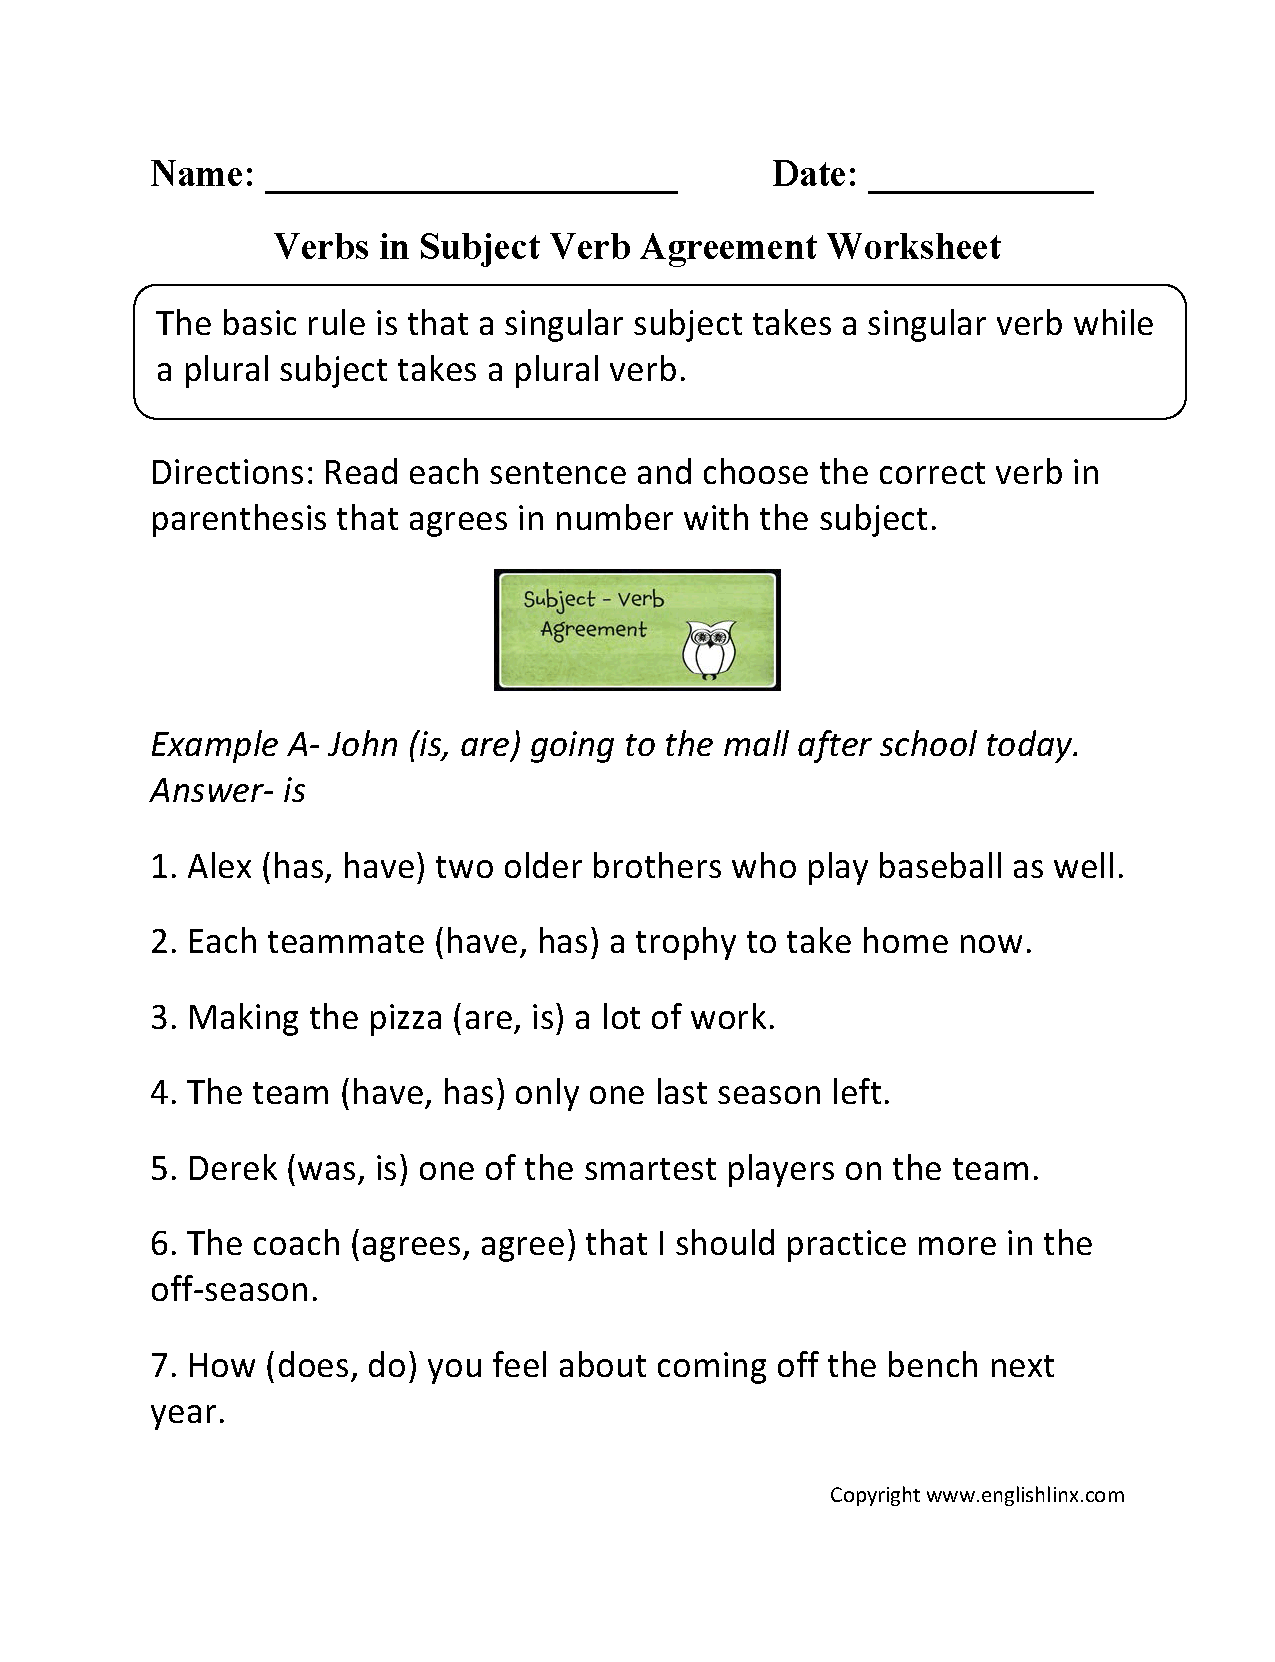 worksheet Subject Verb Agreement Worksheet 4th Grade word usage worksheets subject verb agreement verbs in worksheet